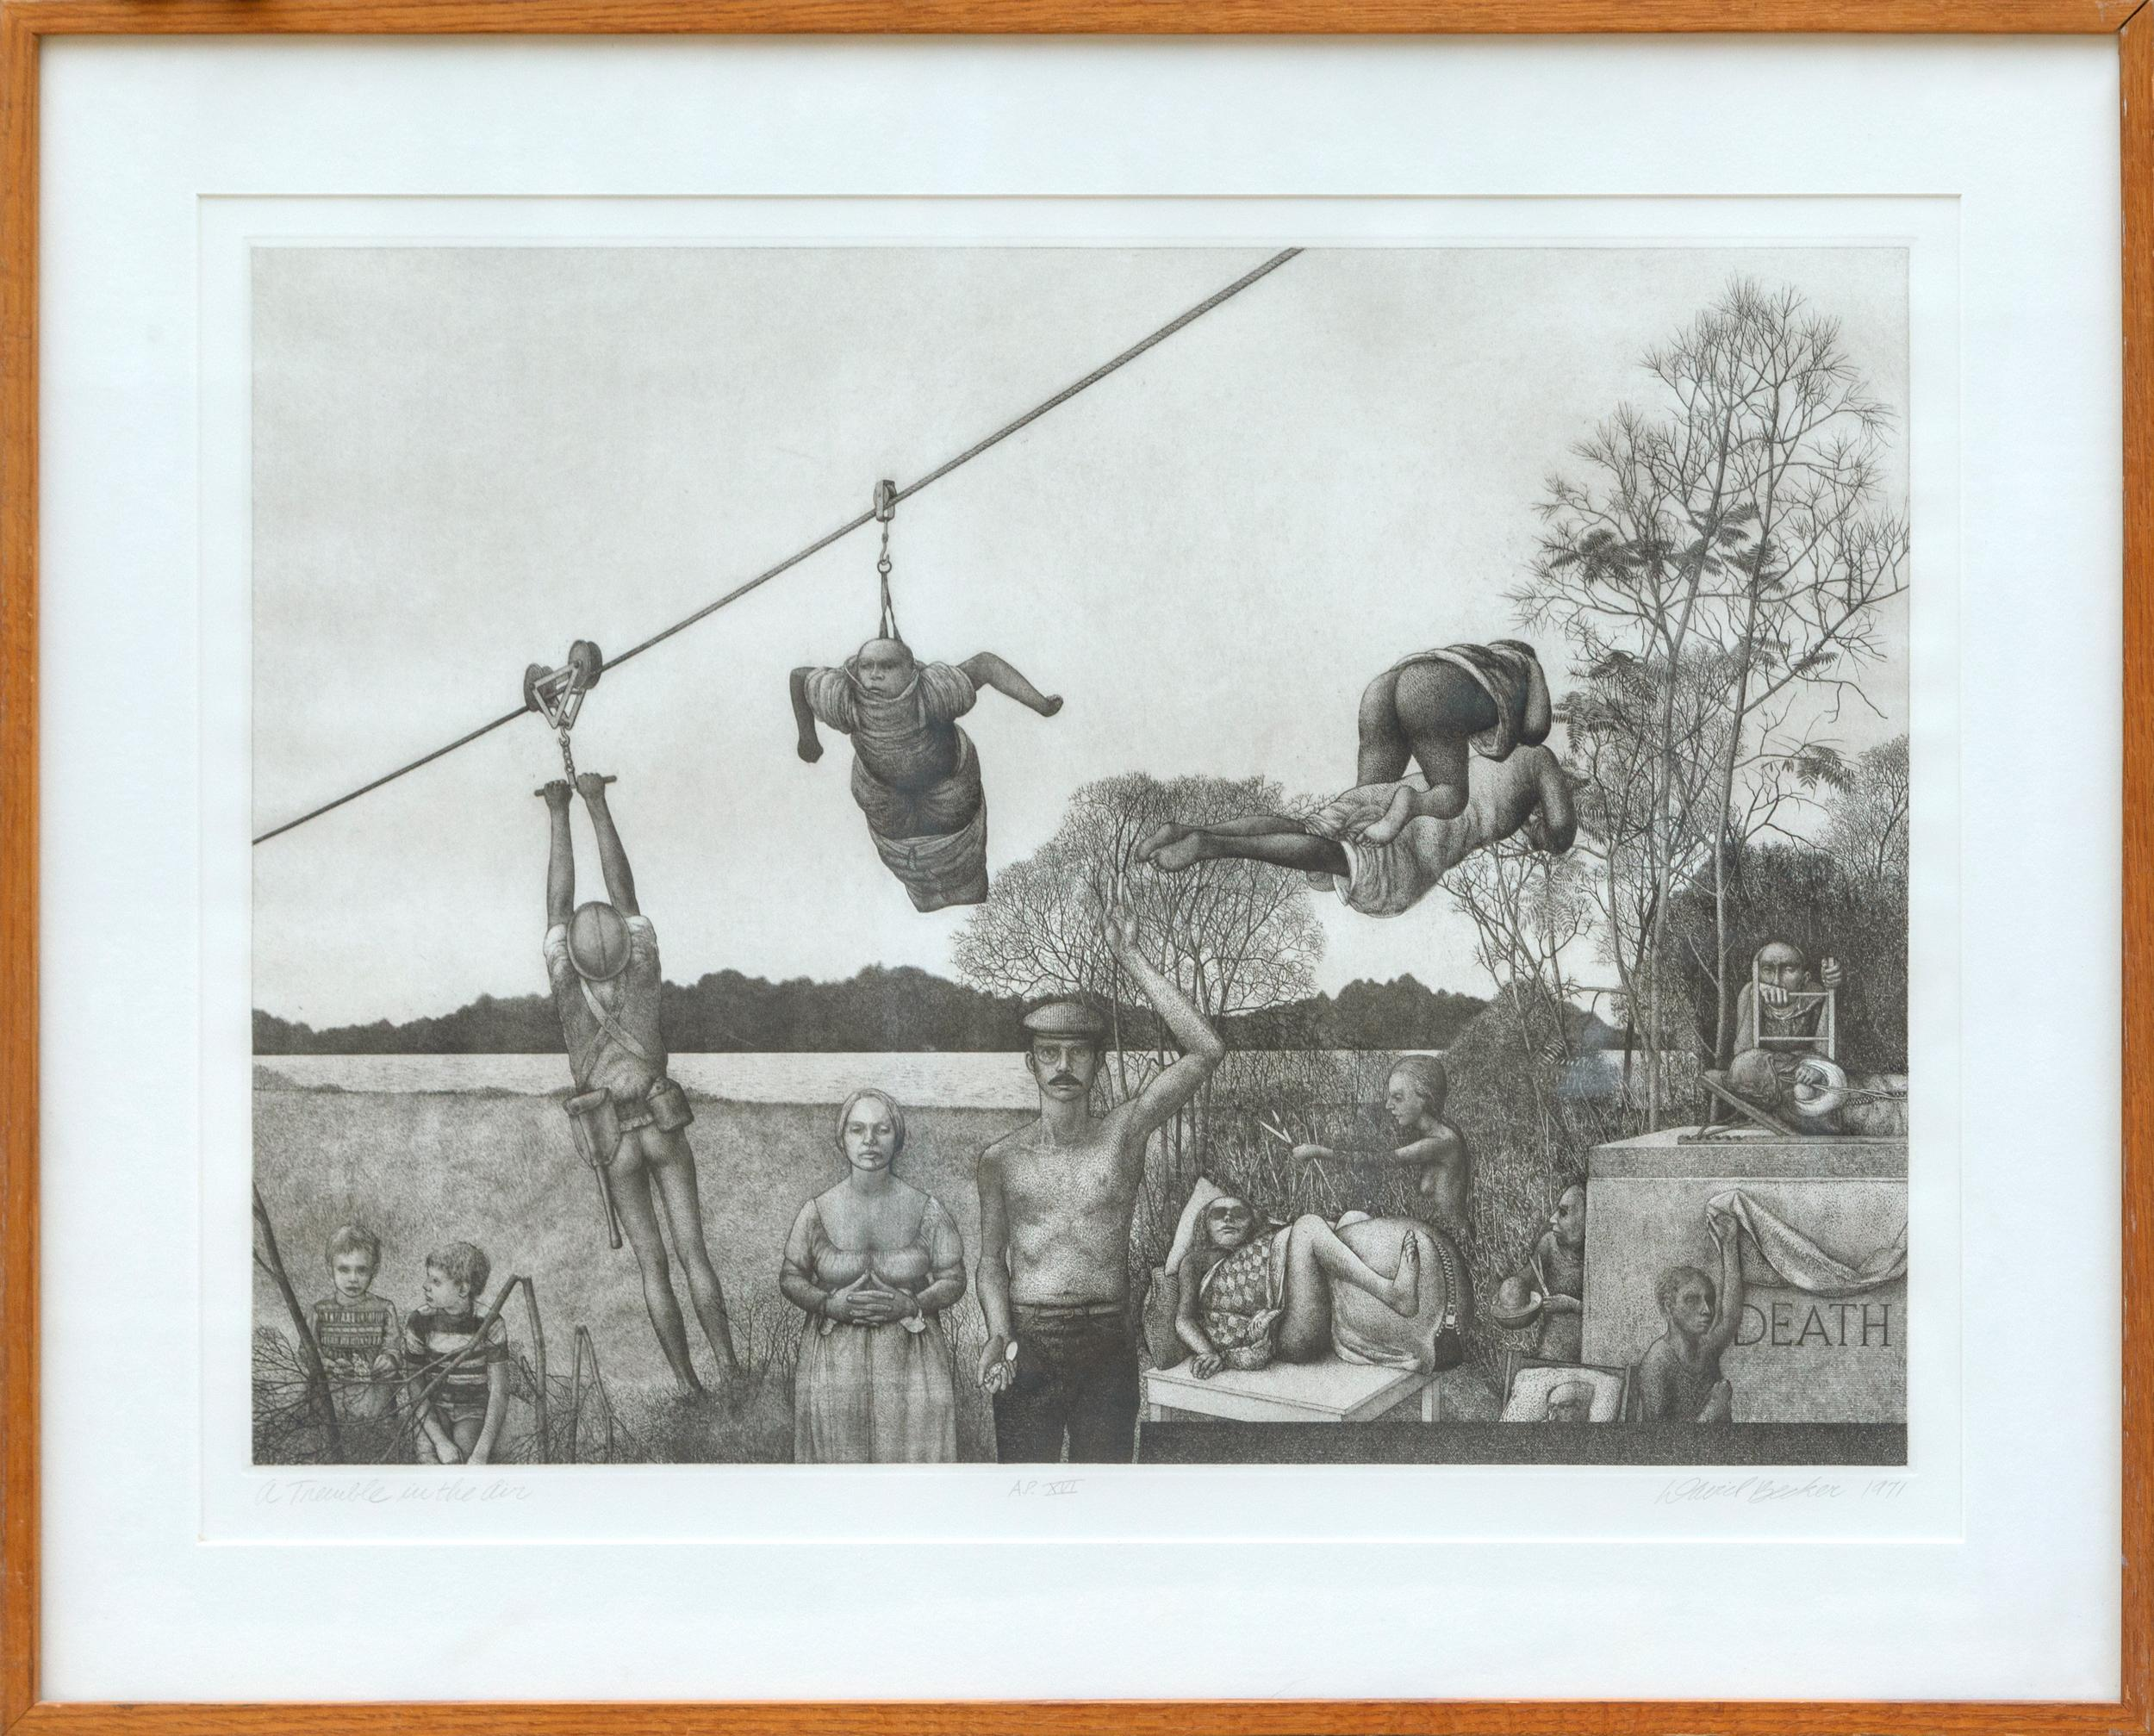 David Becker, A Tremble in the Air, Etching with stipple